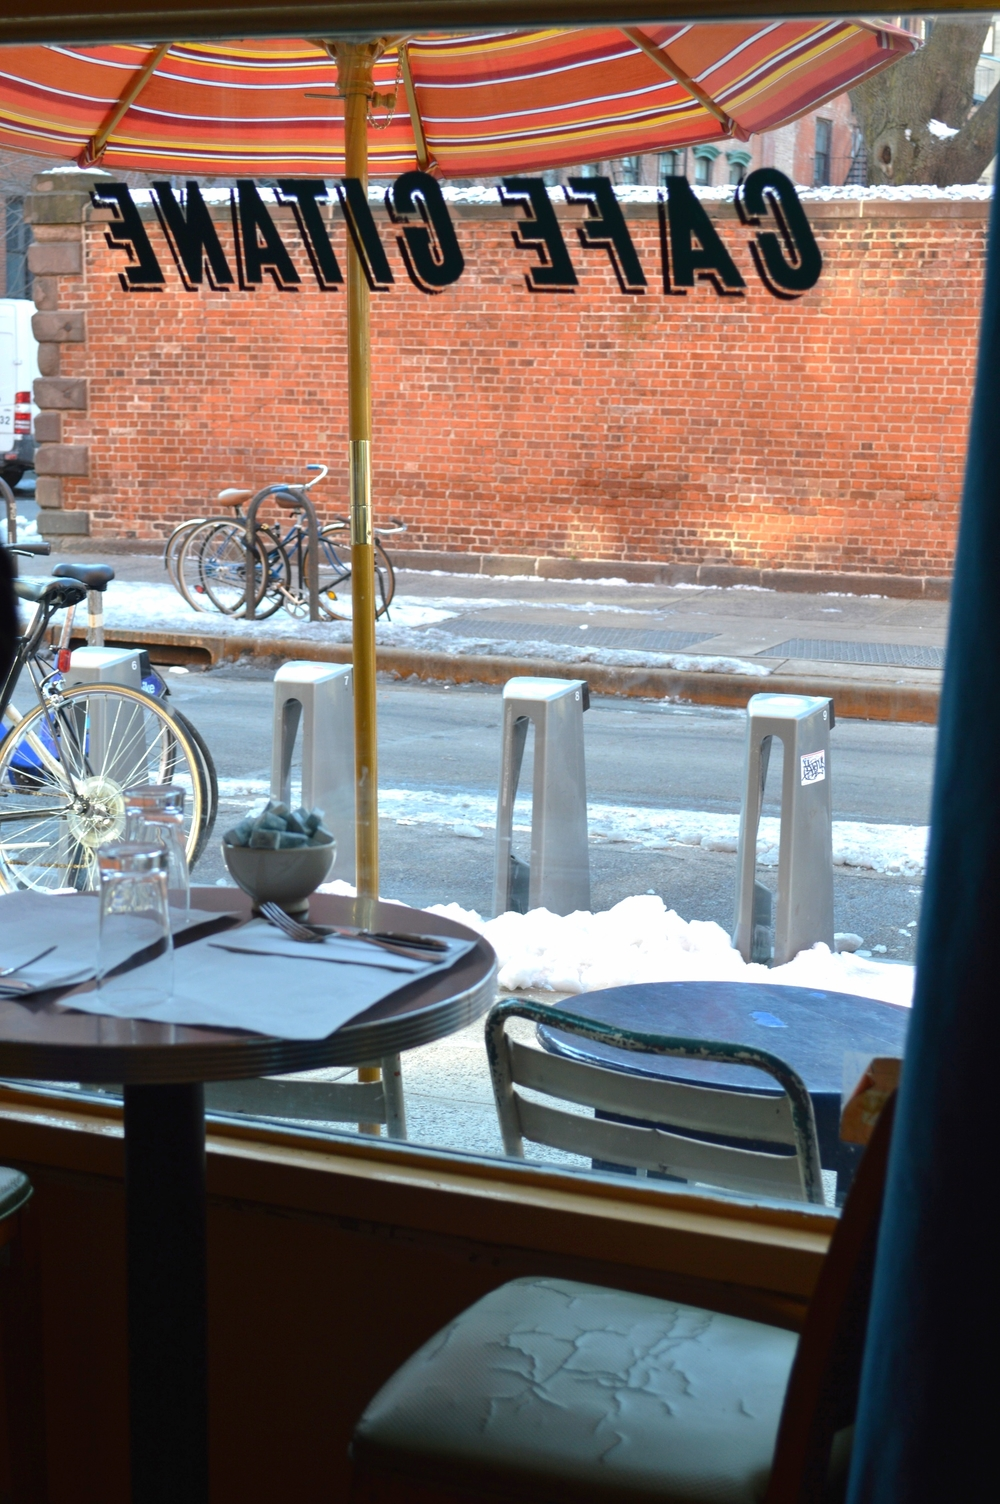 Cafe-Gitane-NYC-Window-LaurenSchwaiger-Travel-Blog.jpg